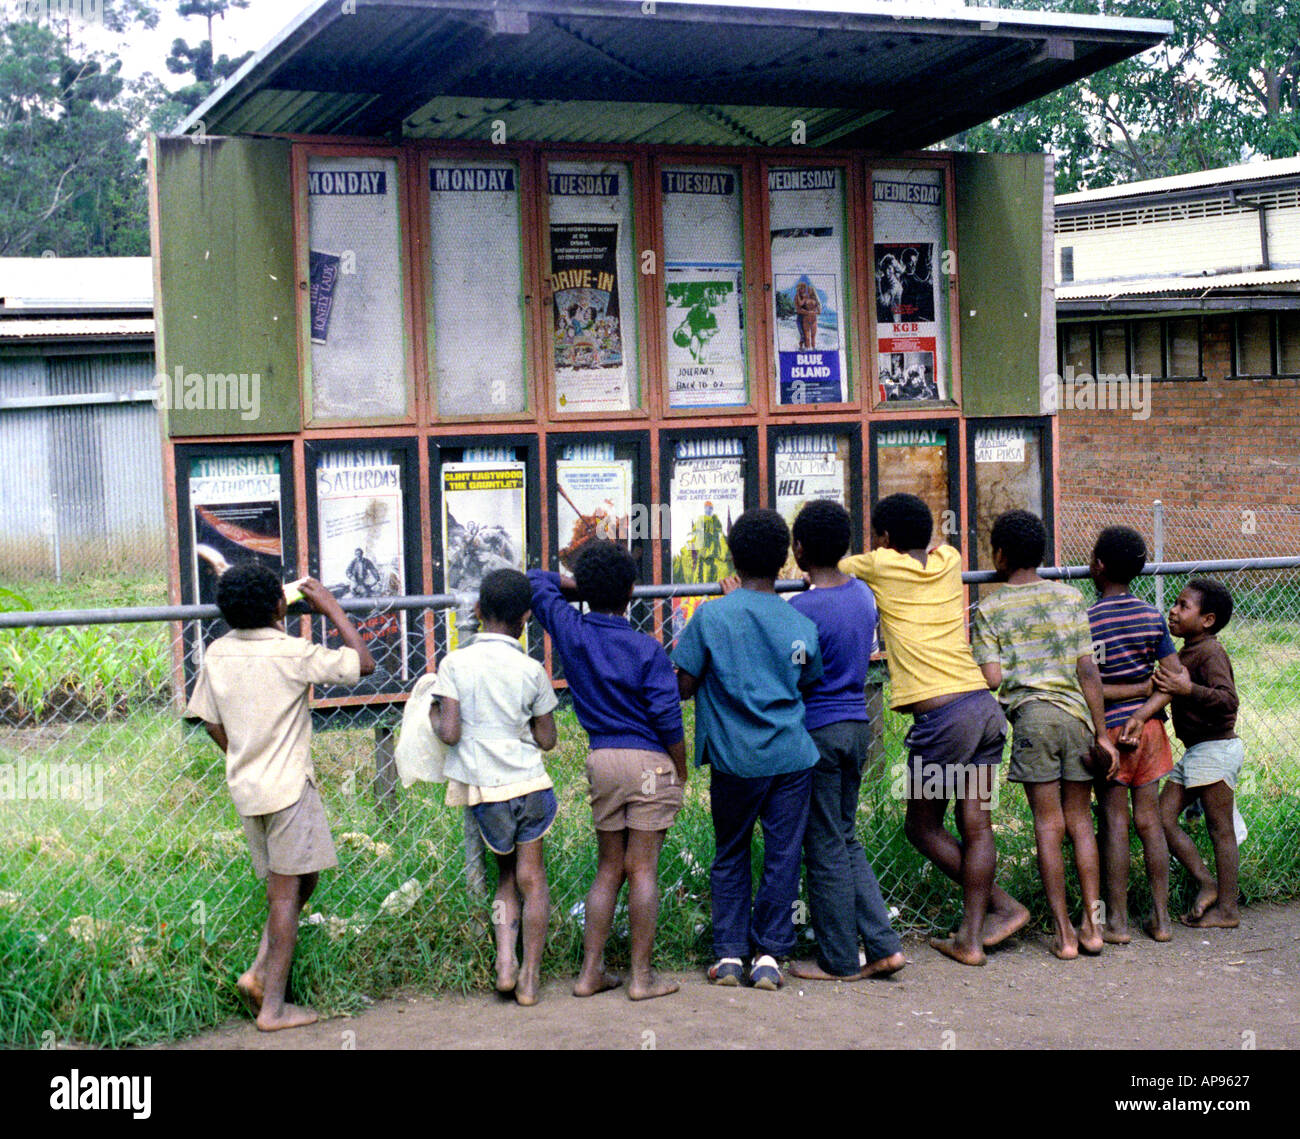 Barefoot children and western film posters Papua New Guinea - Stock Image